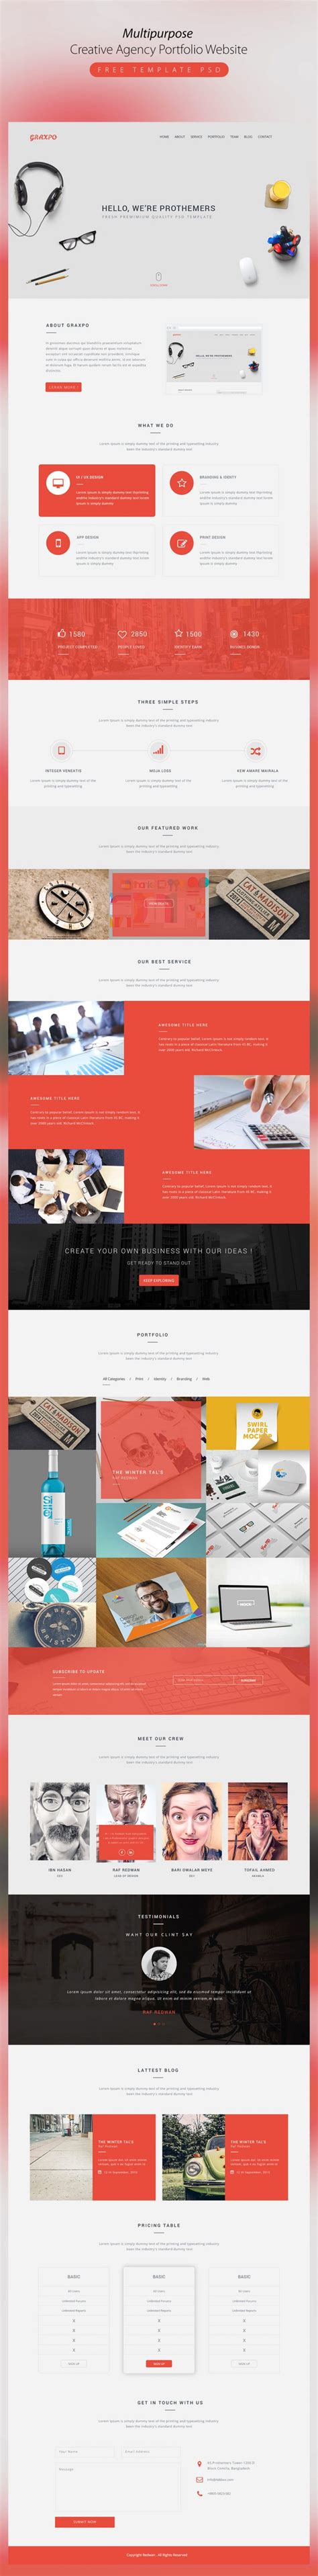 Multipurpose Creative Agency Portfolio Website Template Psd Download Download Psd Sle Portfolio Websites Templates